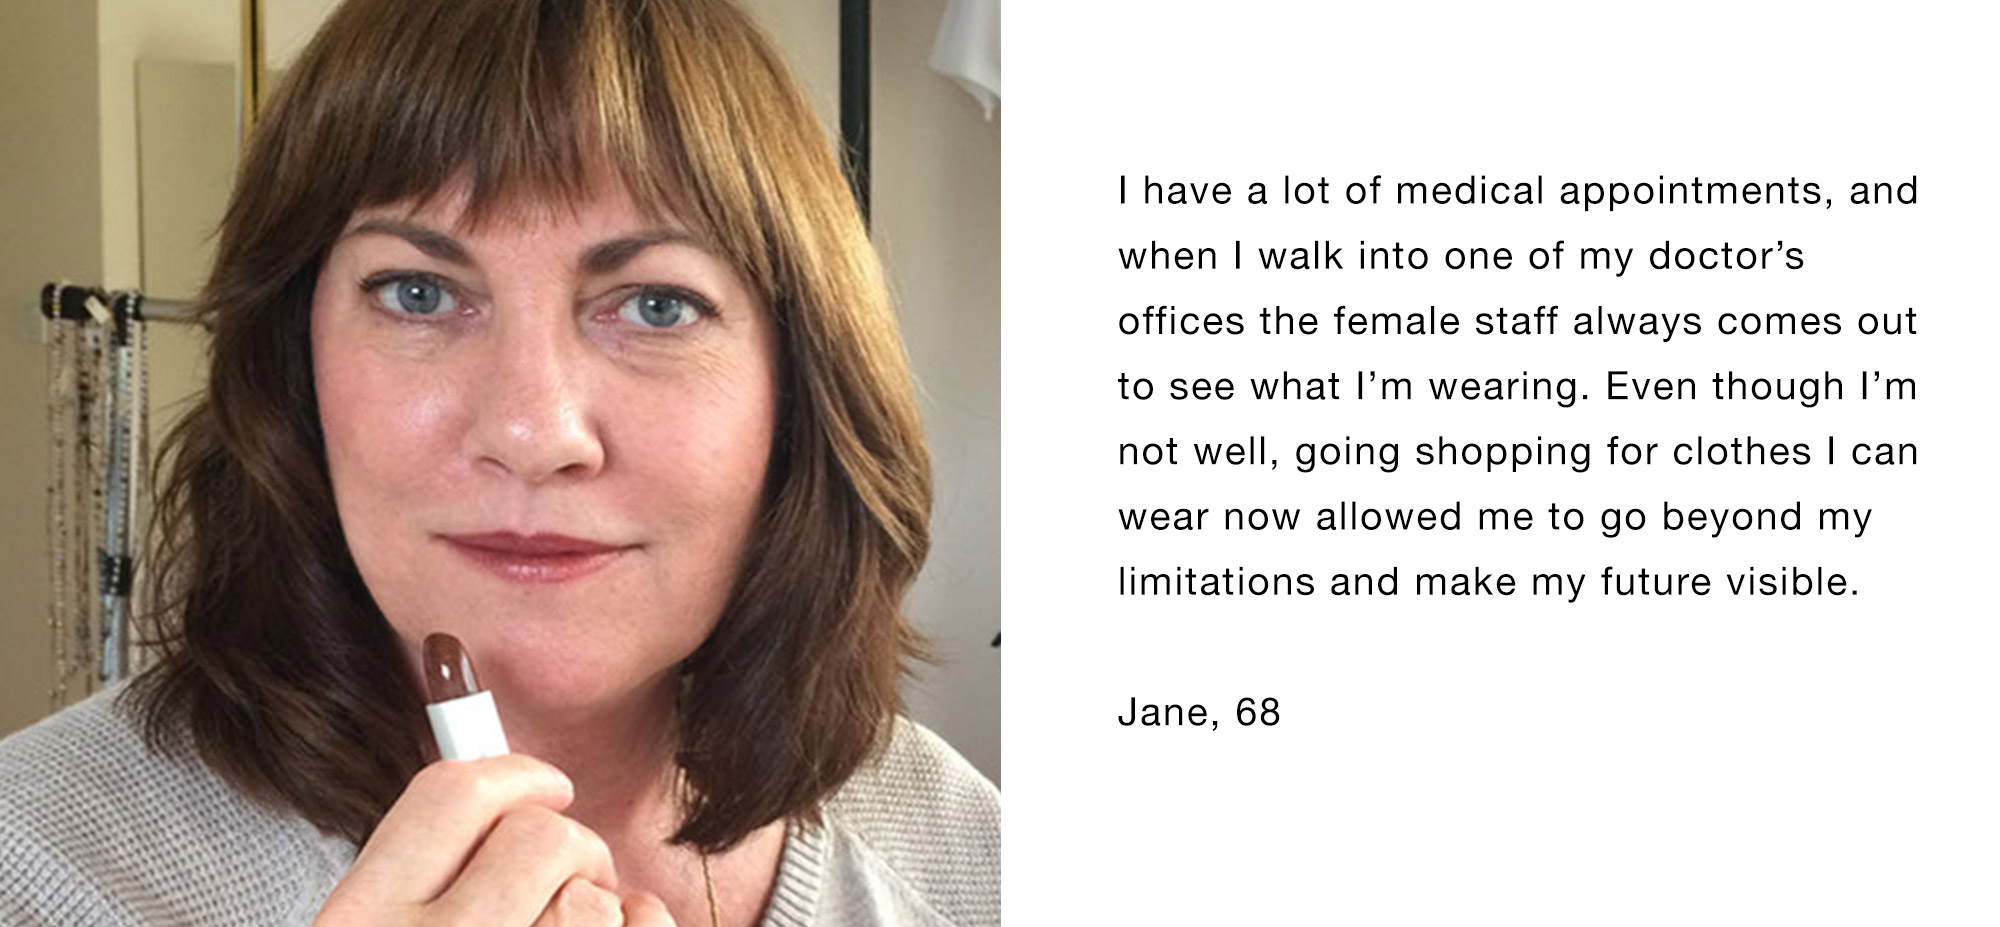 I have a lot of medical appointments, and when I walk into one of my doctor's offices the female staff always comes out to see what I'm wearing. Even though I'm not well, going shopping for clothes I can wear now allowed me to go beyond my limitations and make my future visible. Jane, 68